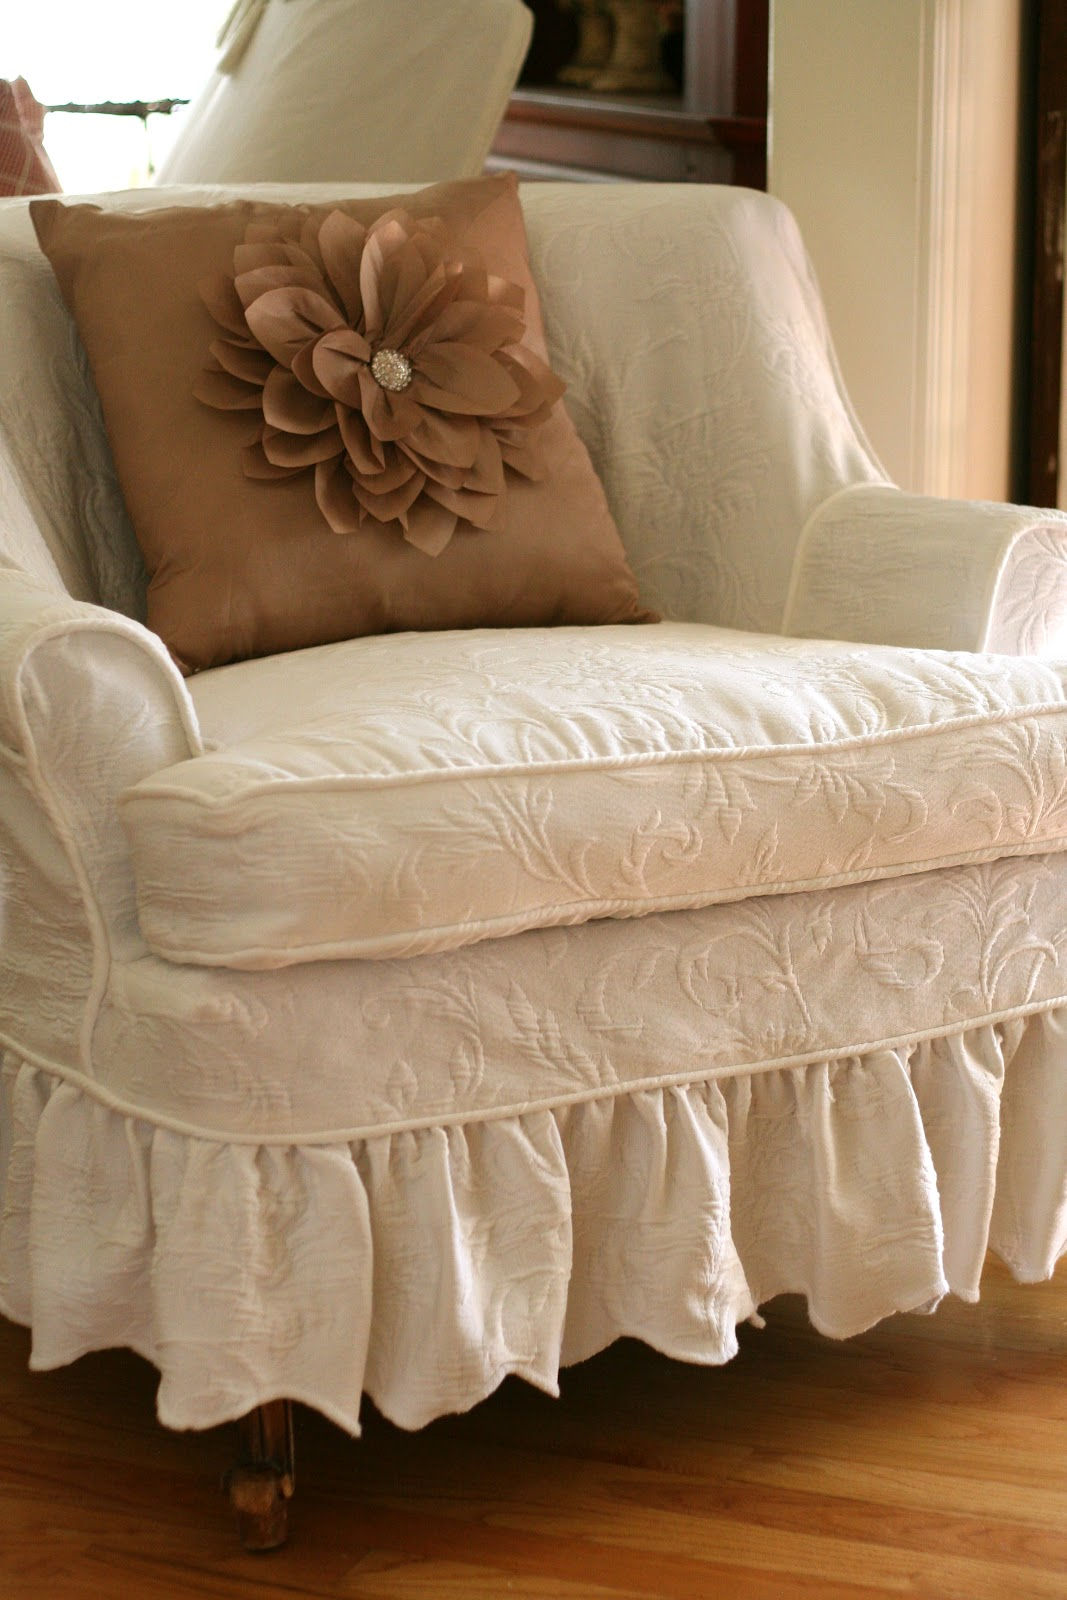 Custom Slipcovers By Shelley Matelesse Bedspread Slipcover